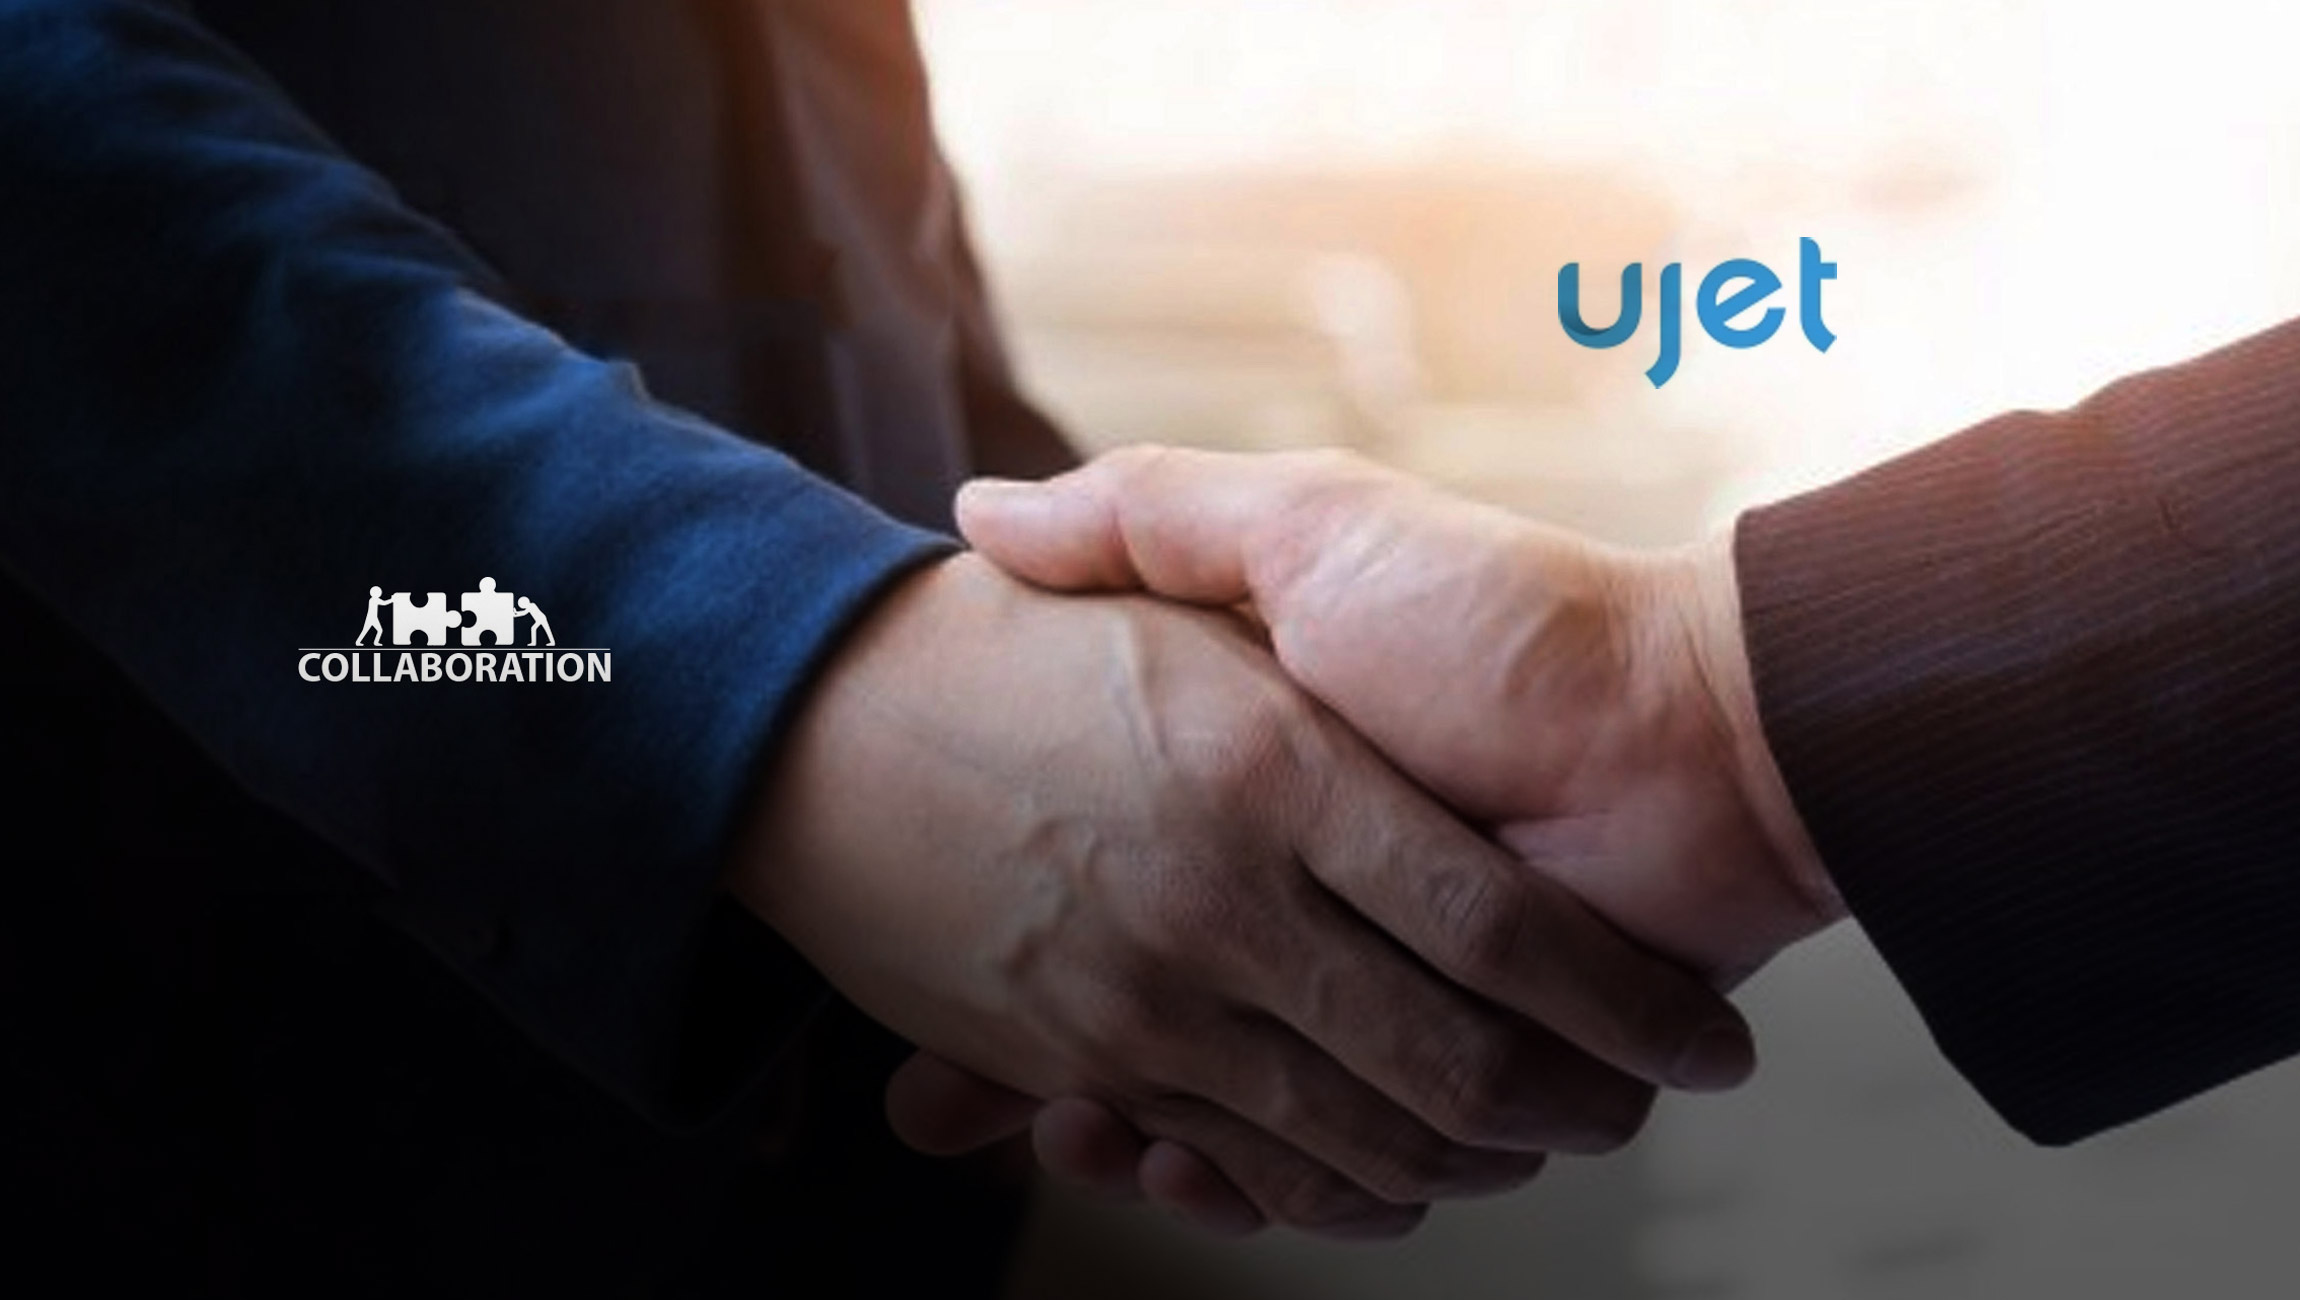 UJET Adds PlanetOne to Rapidly Growing Channel Partner Program